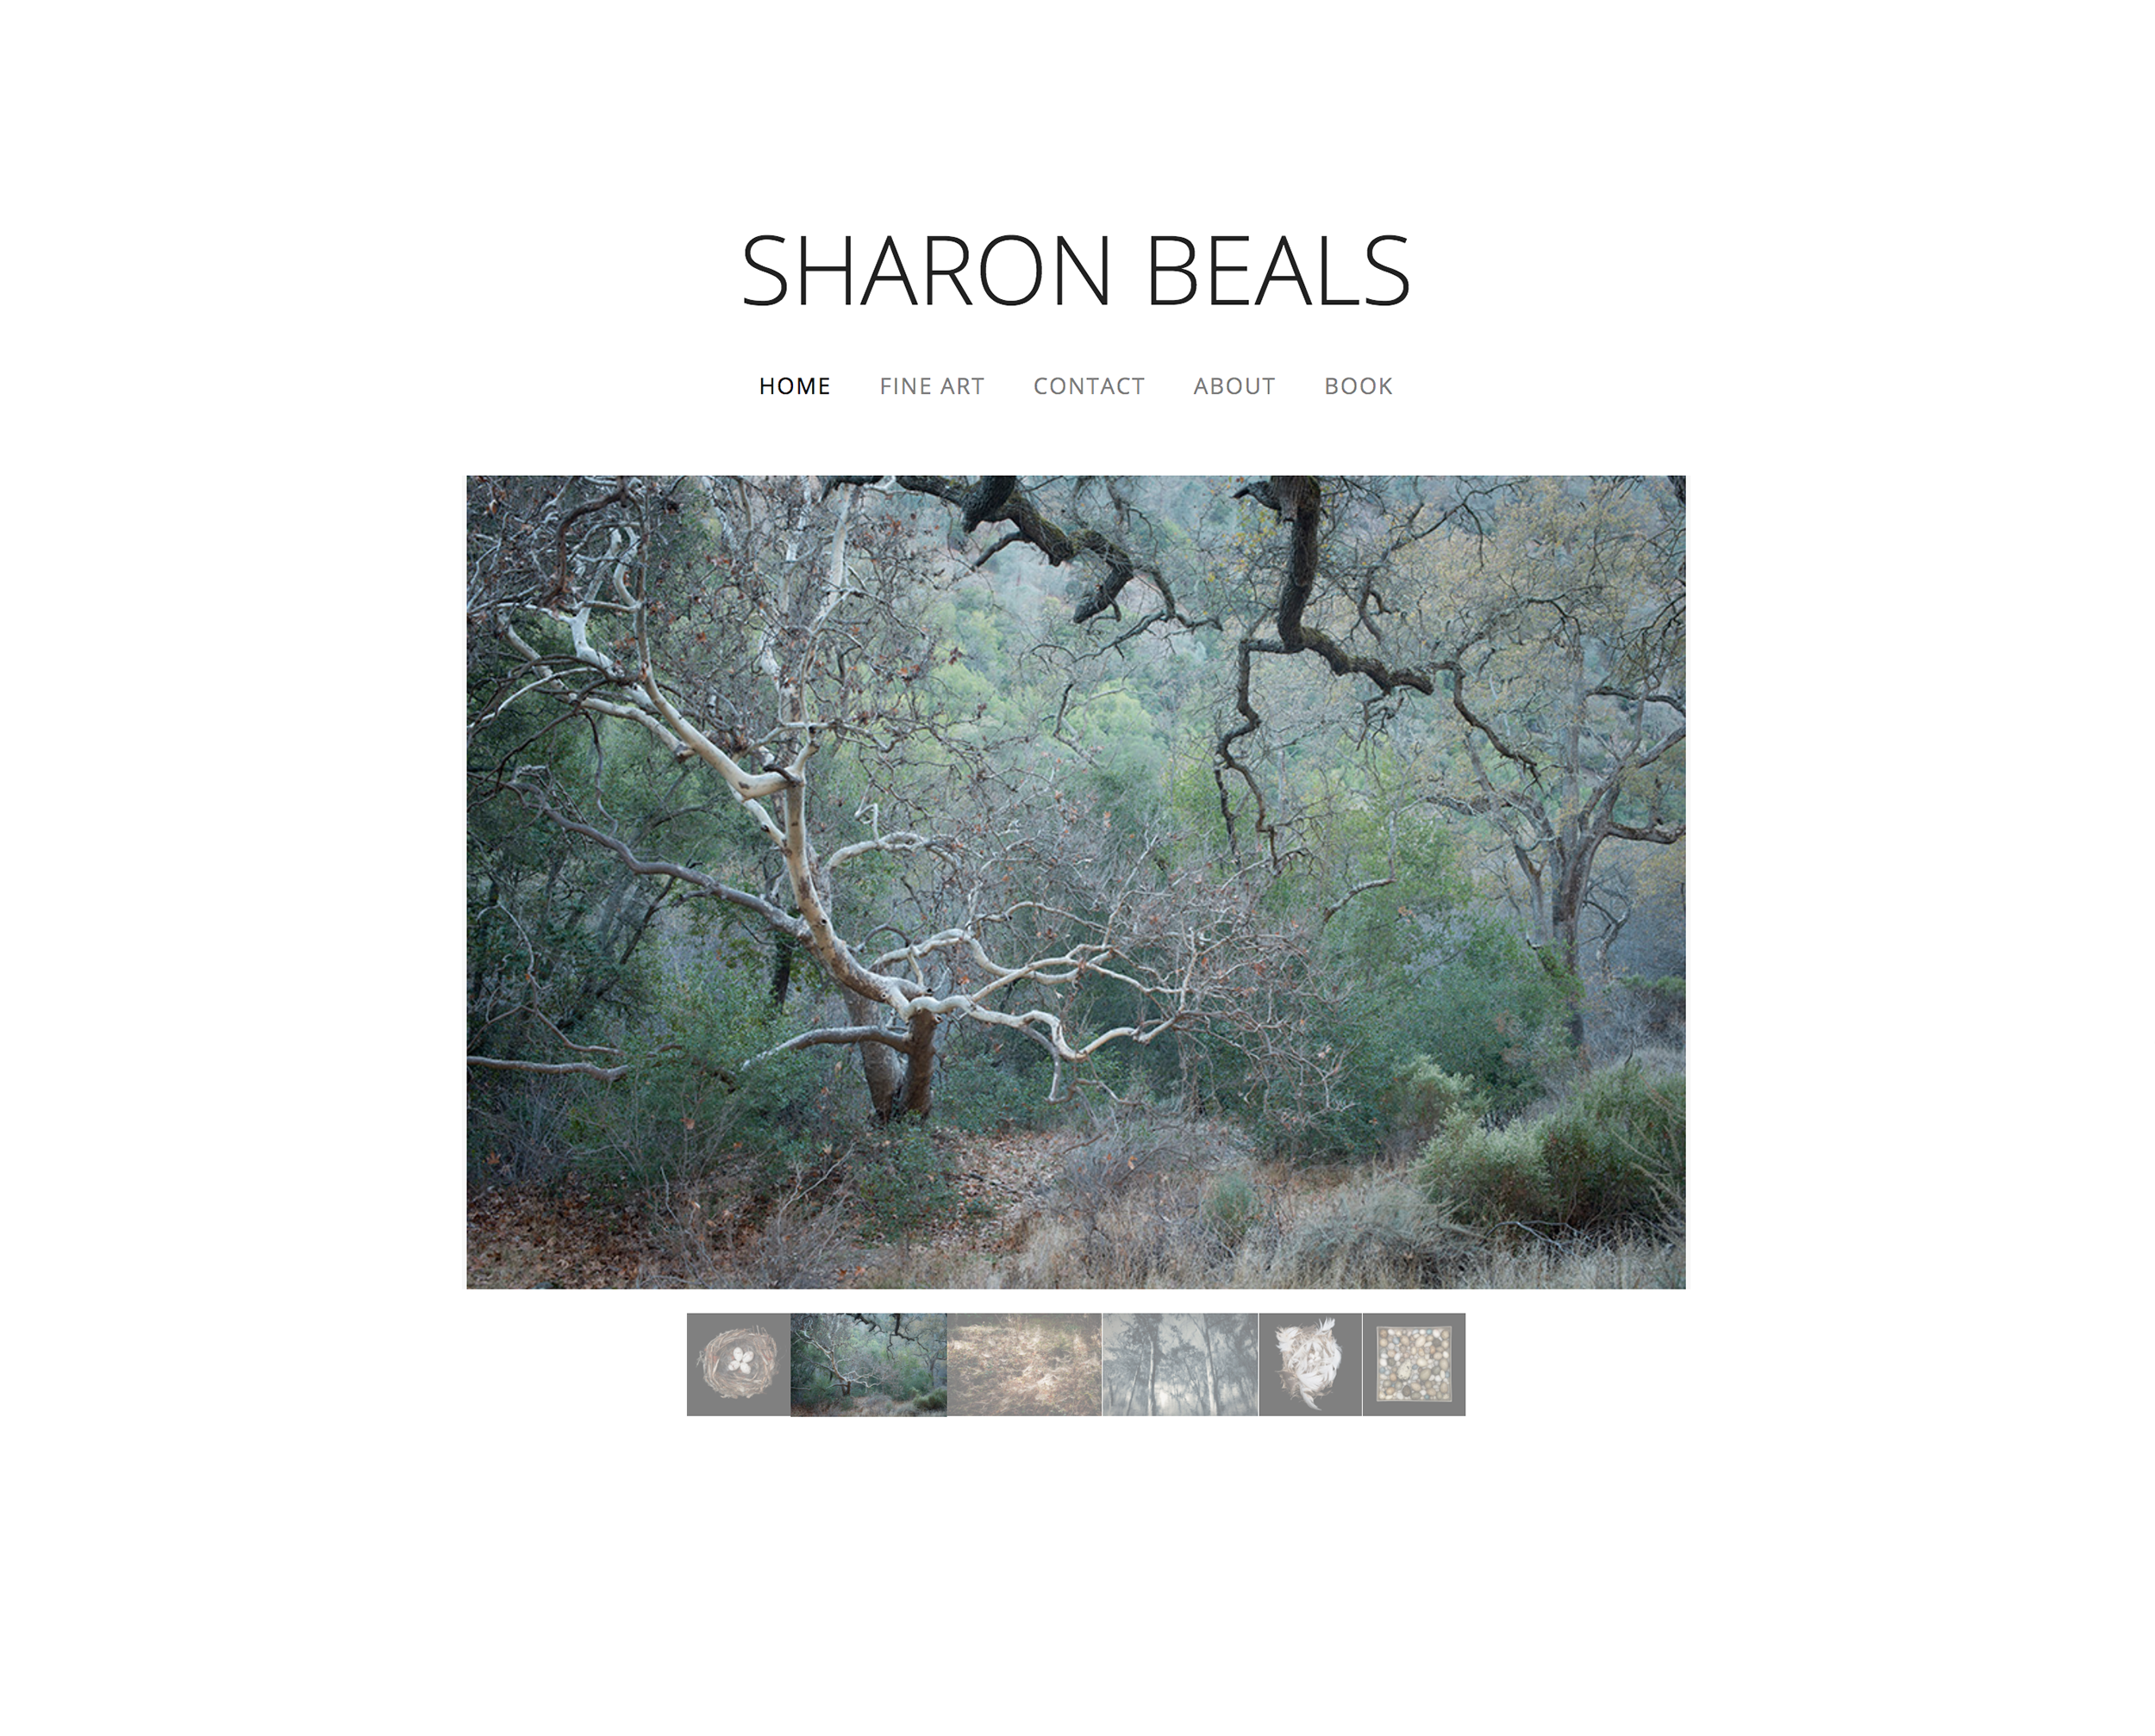 Sharon-Beals-site.png